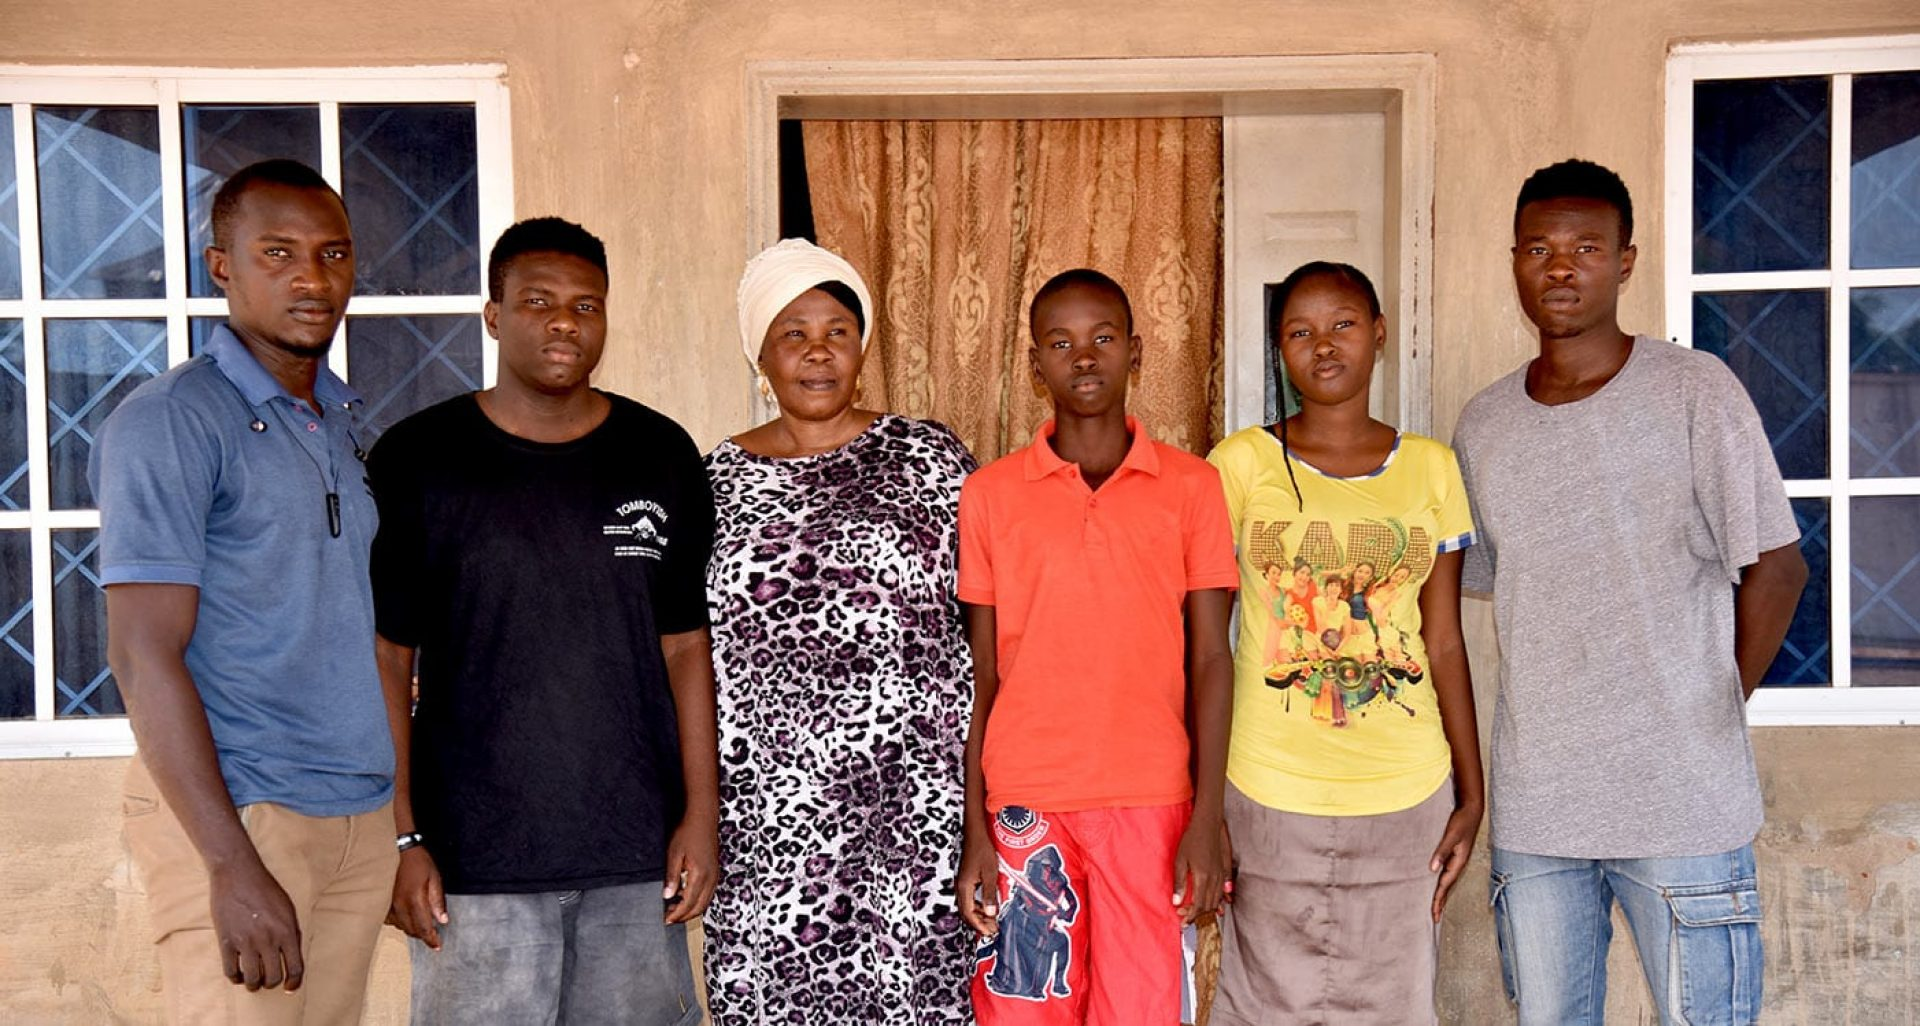 A woman stands with 5 children in front of a house